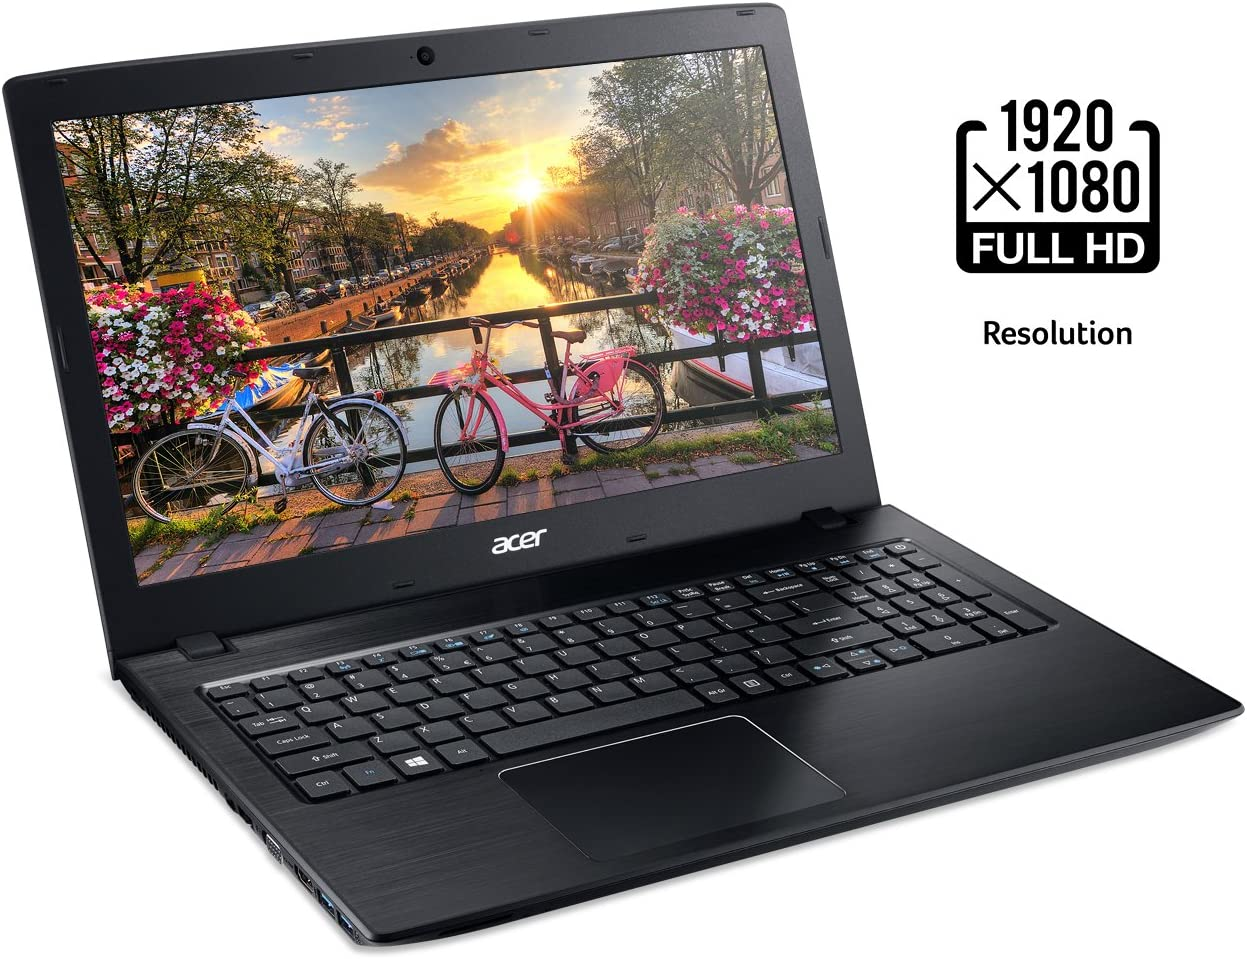 Acer Aspire E 15.6 inch Full HD